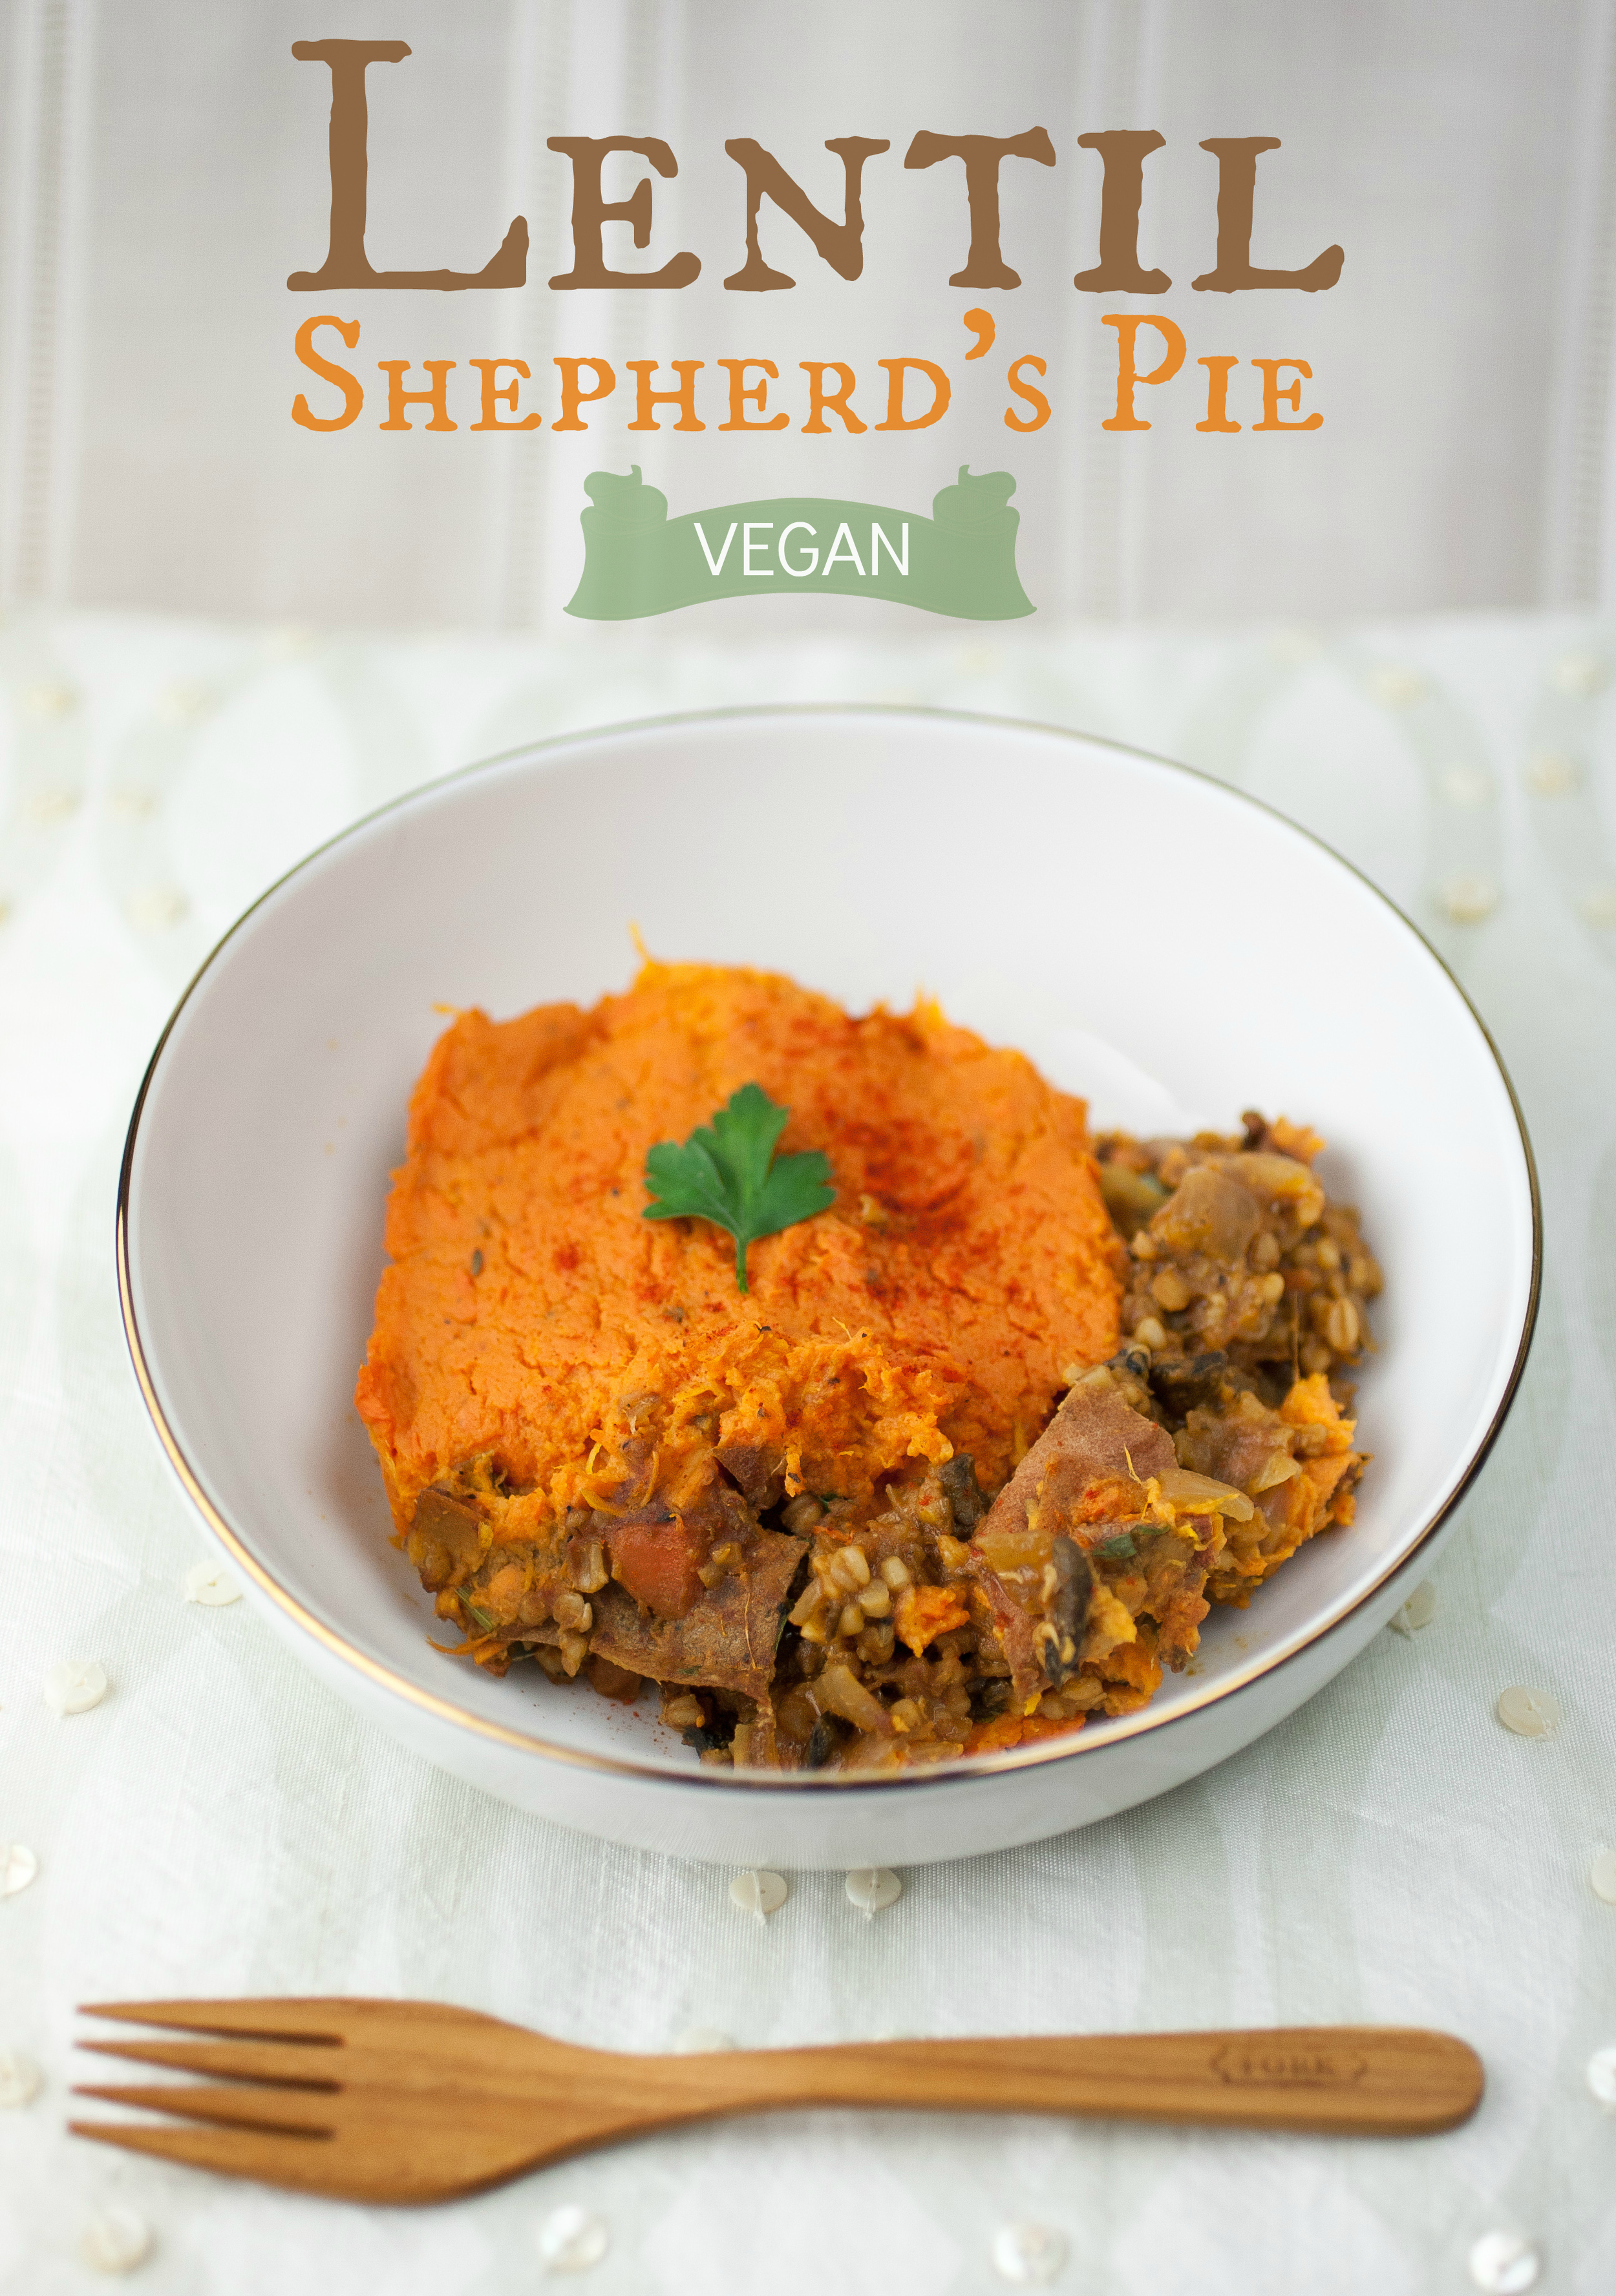 ... . Perfect weather for a good, filling shepherd's pie if you ask me